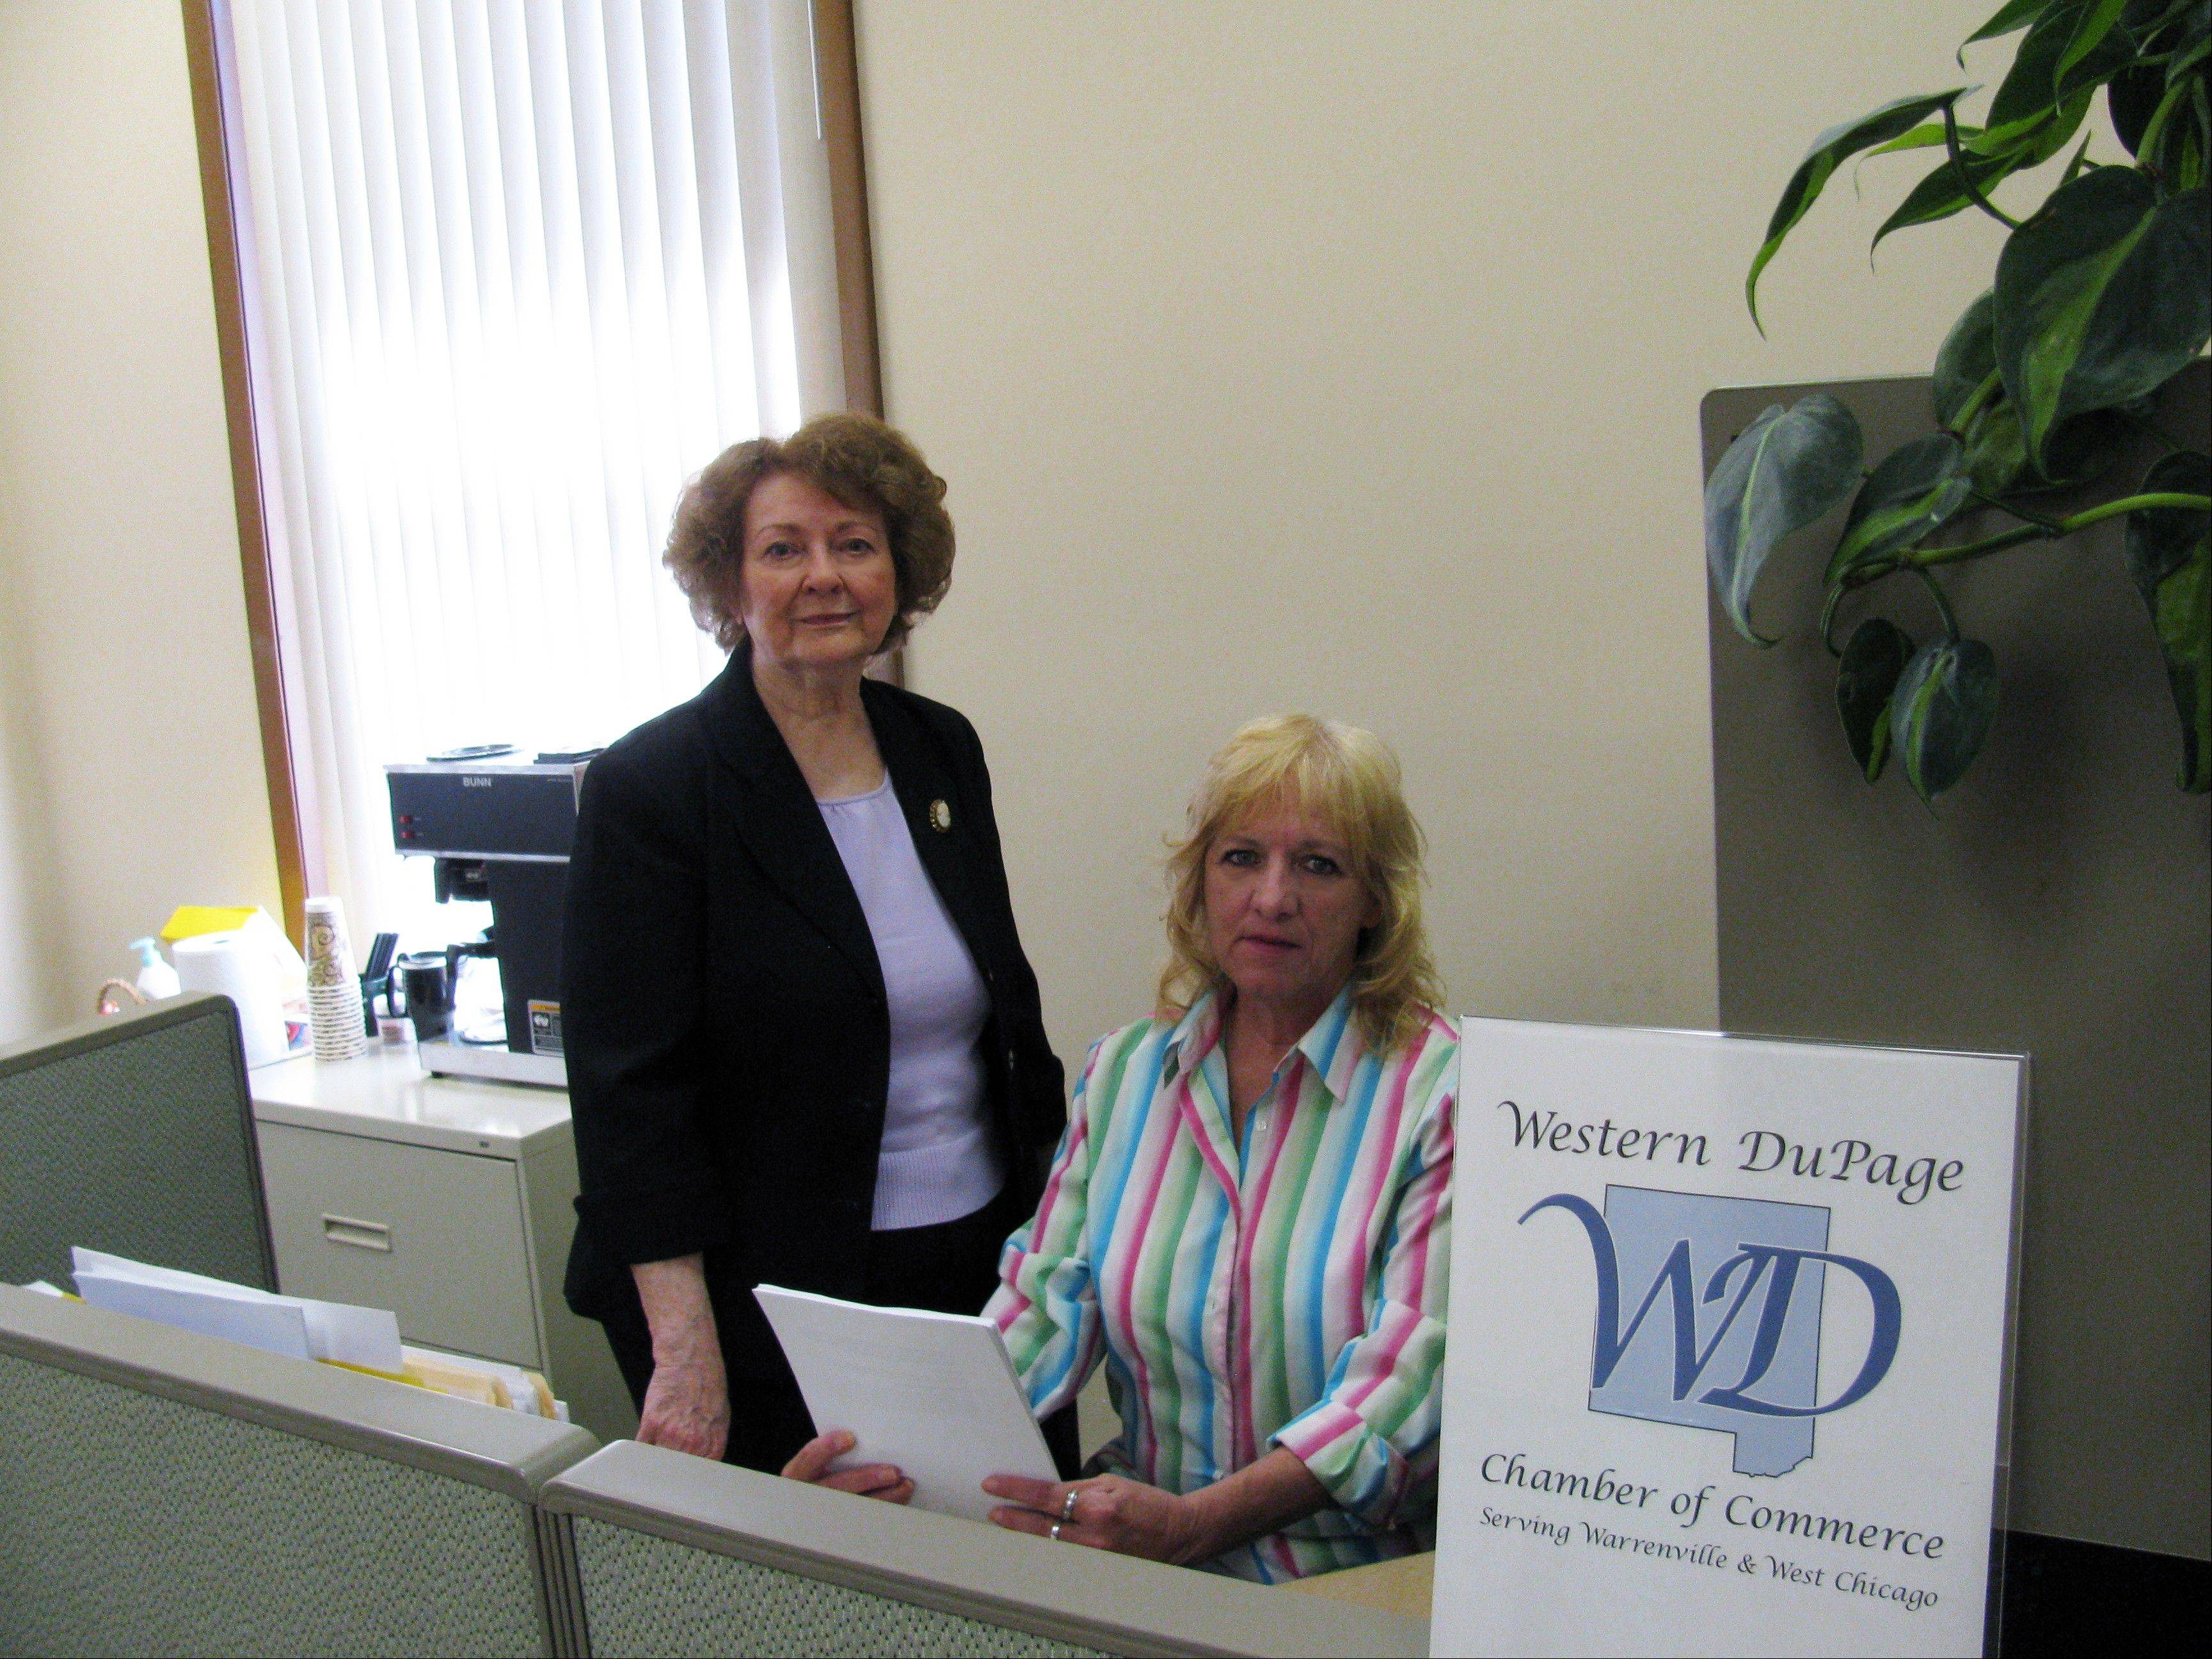 West Chicago-based Training Plus Inc. owners Mary Lou Emami and Lolly Frederick provide skill training and consulting services designed to advance workforce excellence.